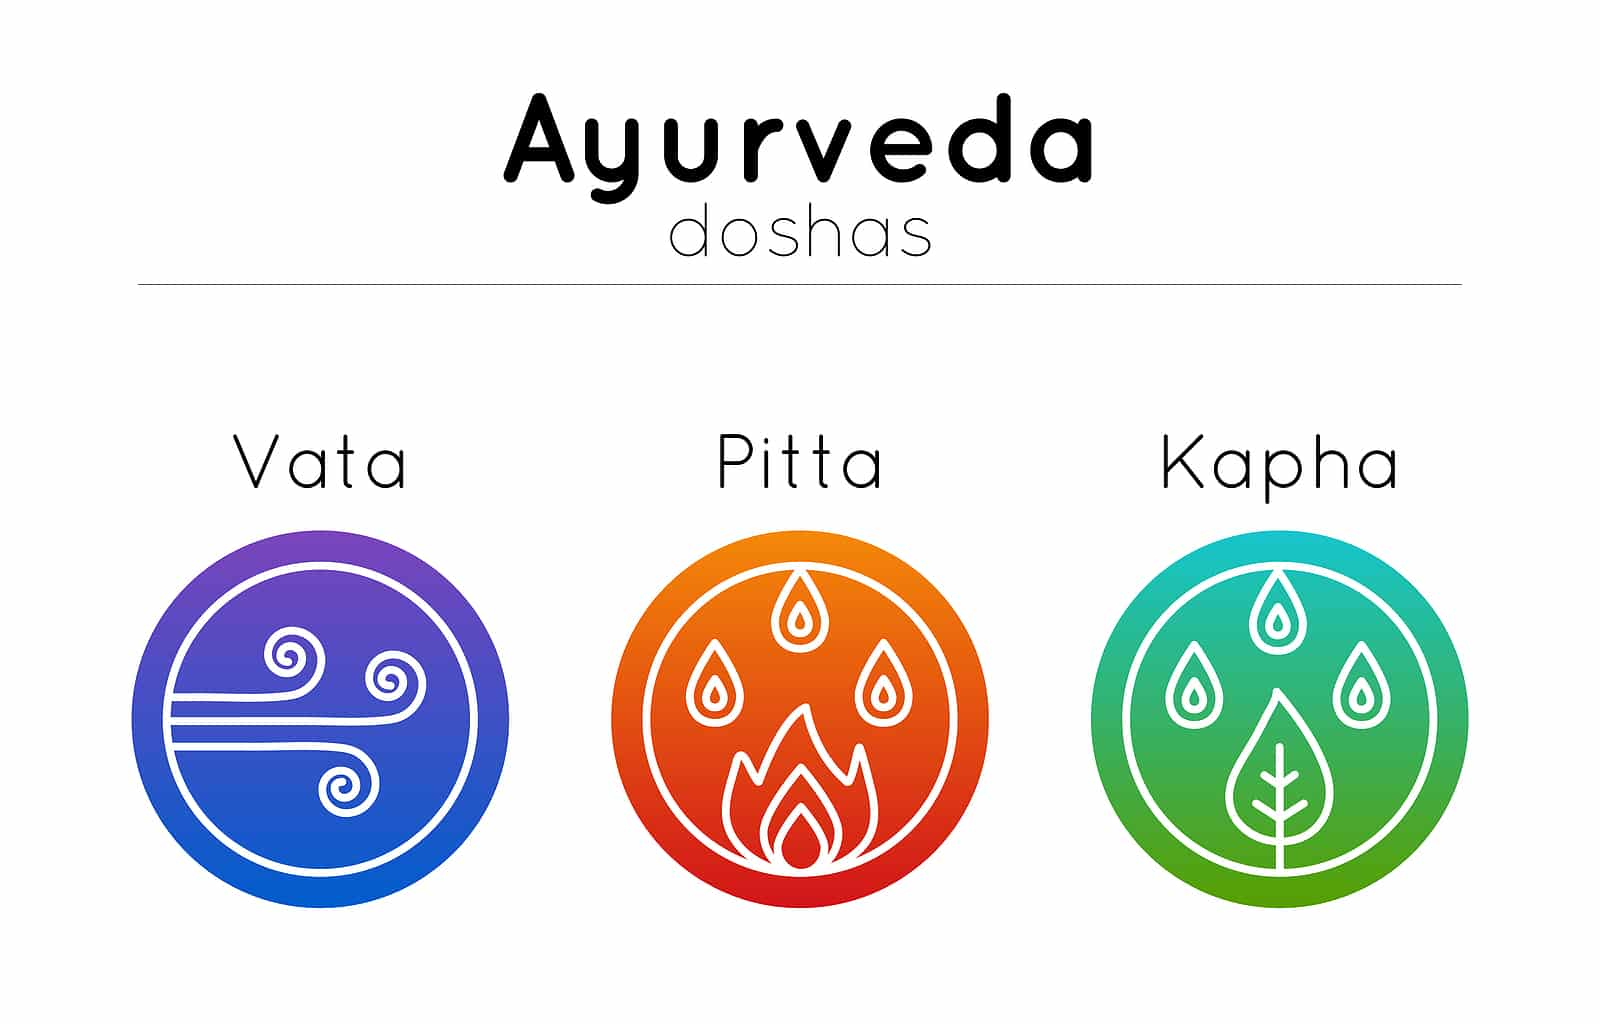 Ayurveda-doshas-and-what-doshas-mean-for-your-health